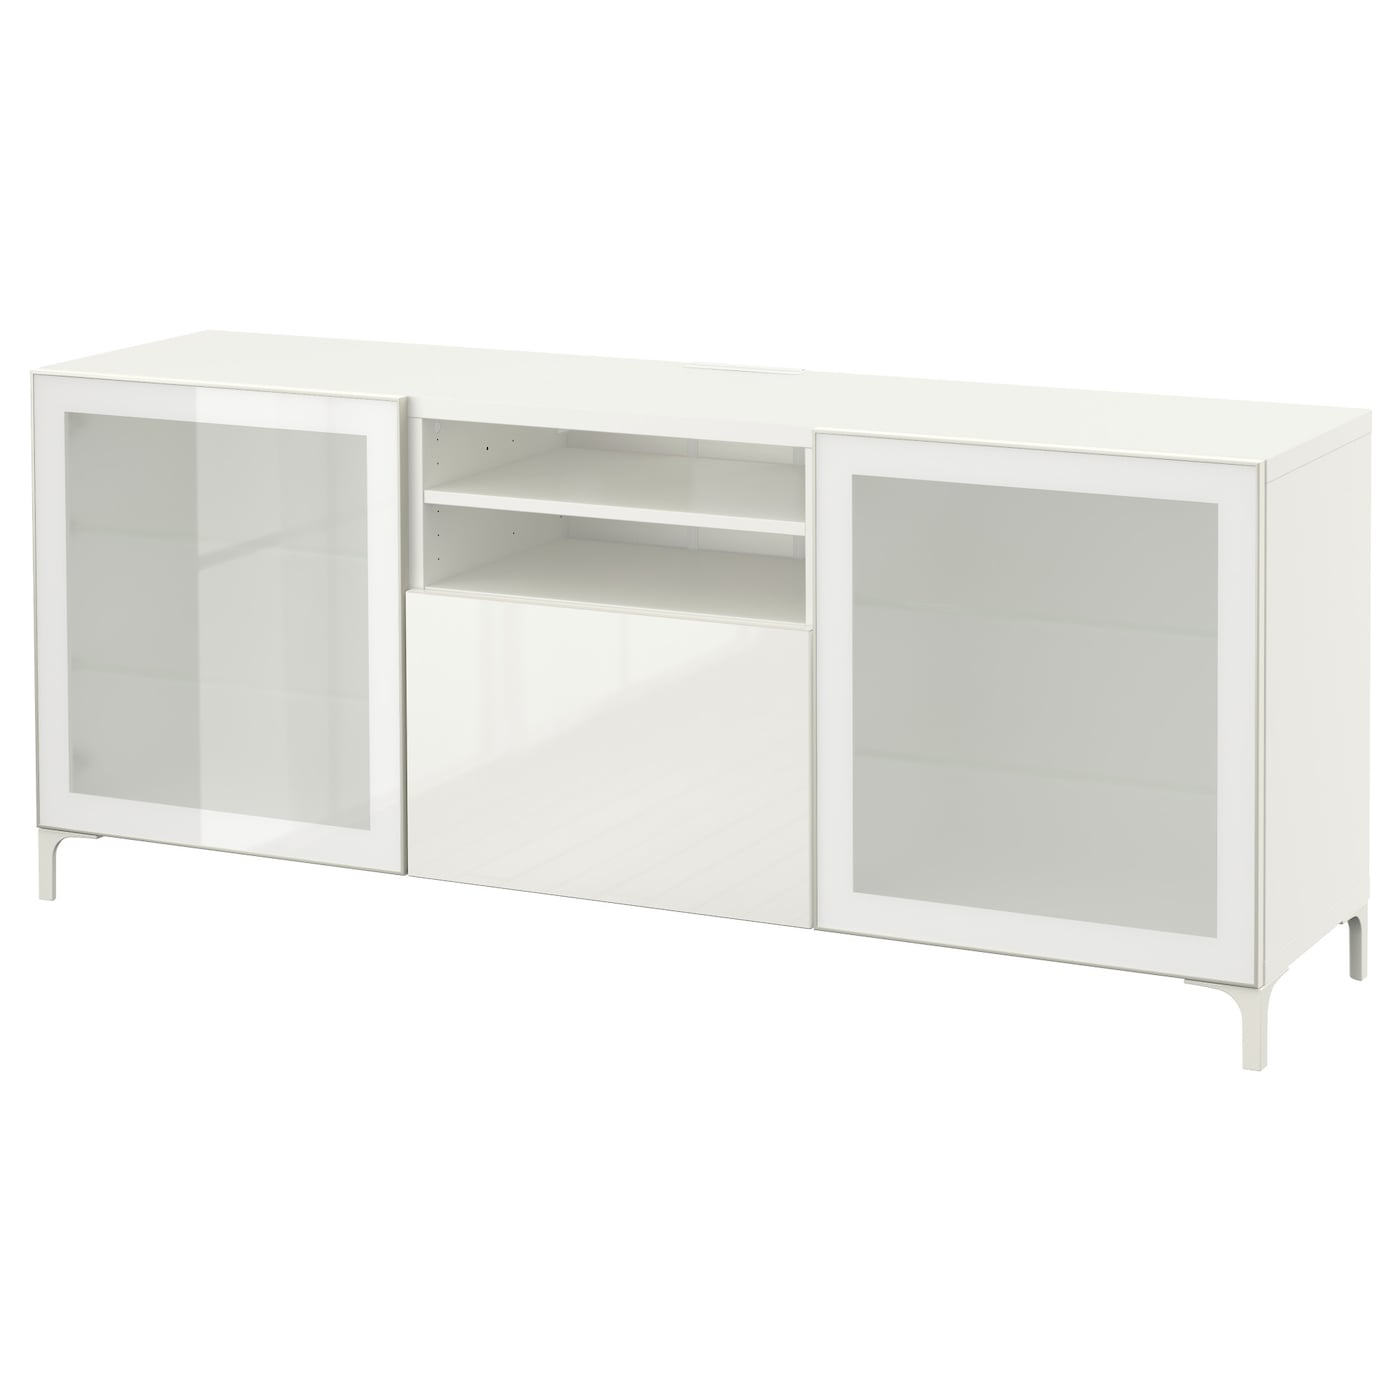 High Gloss White Chest Of Drawers Ikea IKEA MALM chest of 3